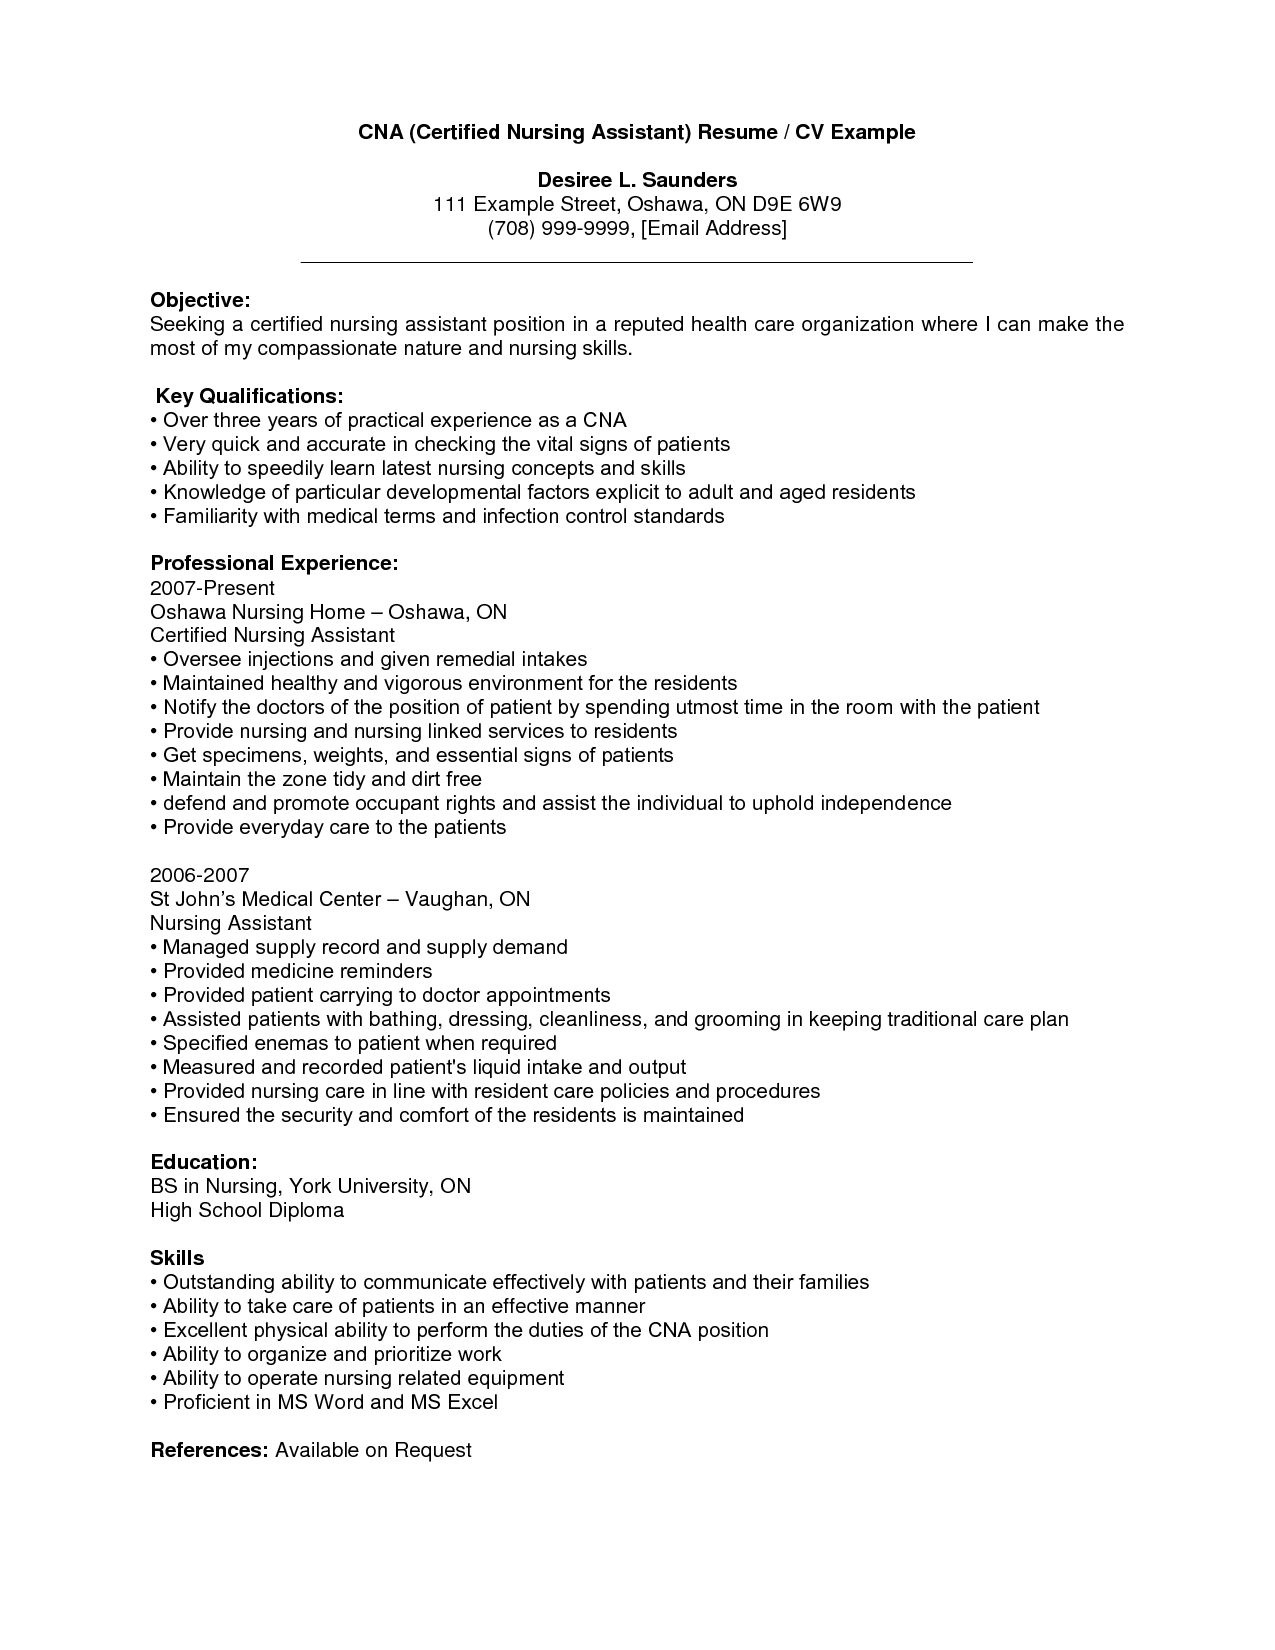 Cna Resume with No Experience - Cna Resume No Experience Elegant Professional Nursing Resume